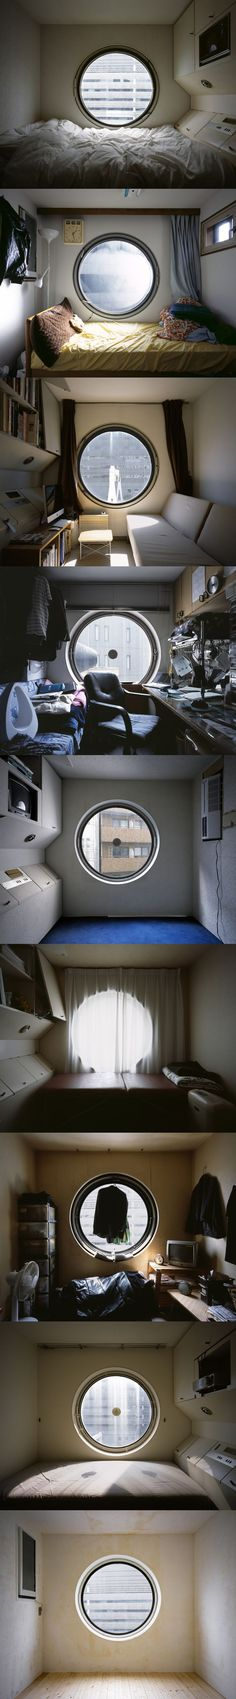 this is capsule hotel in japan